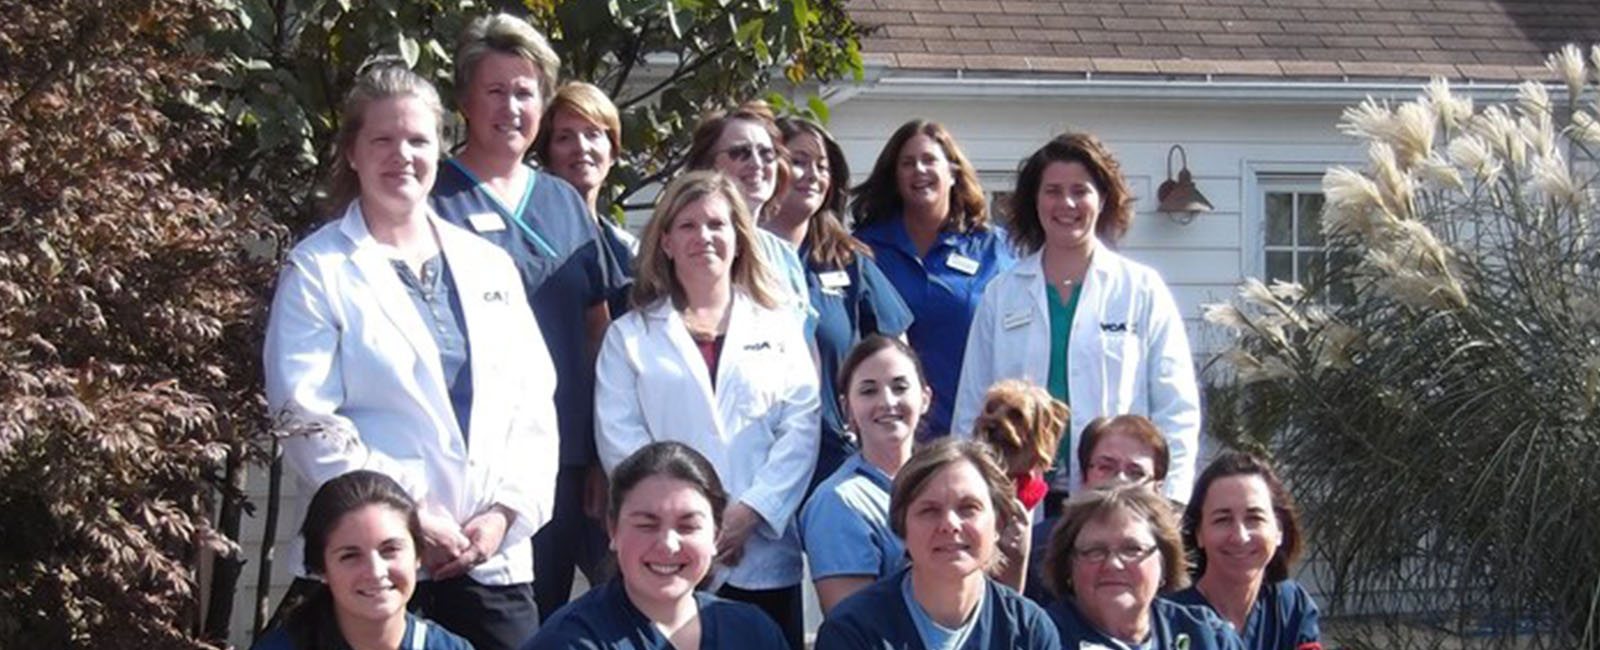 Homepage Team Picture of VCA Southwick Animal Hospital